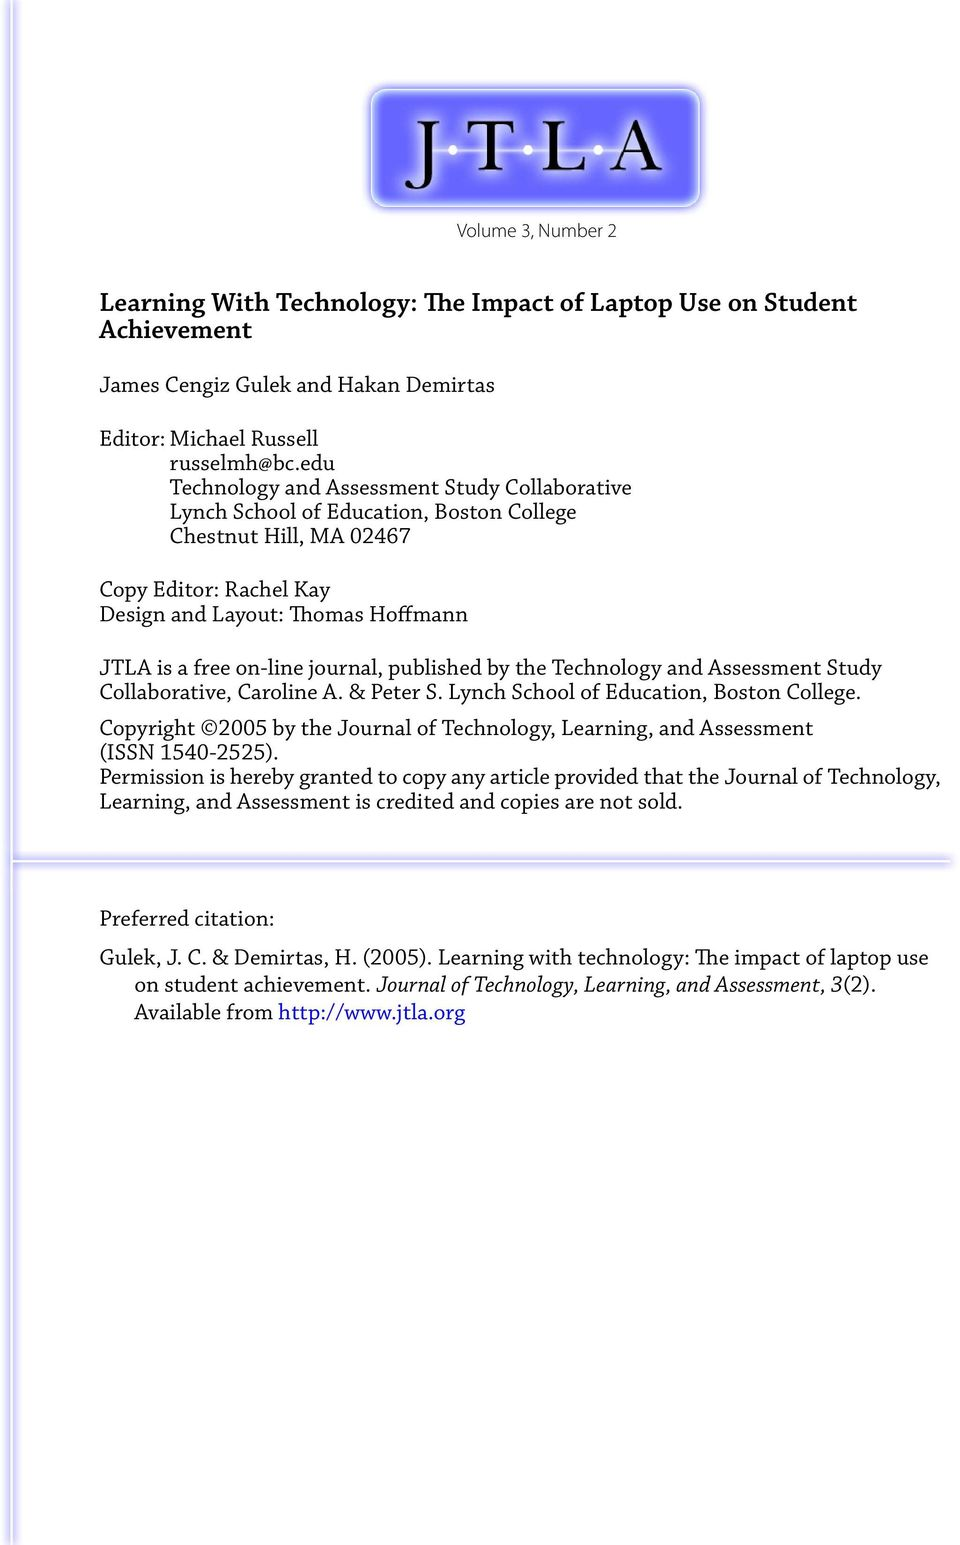 journal, published by the Technology and Assessment Study Collaborative, Caroline A. & Peter S. Lynch School of Education, Boston College.